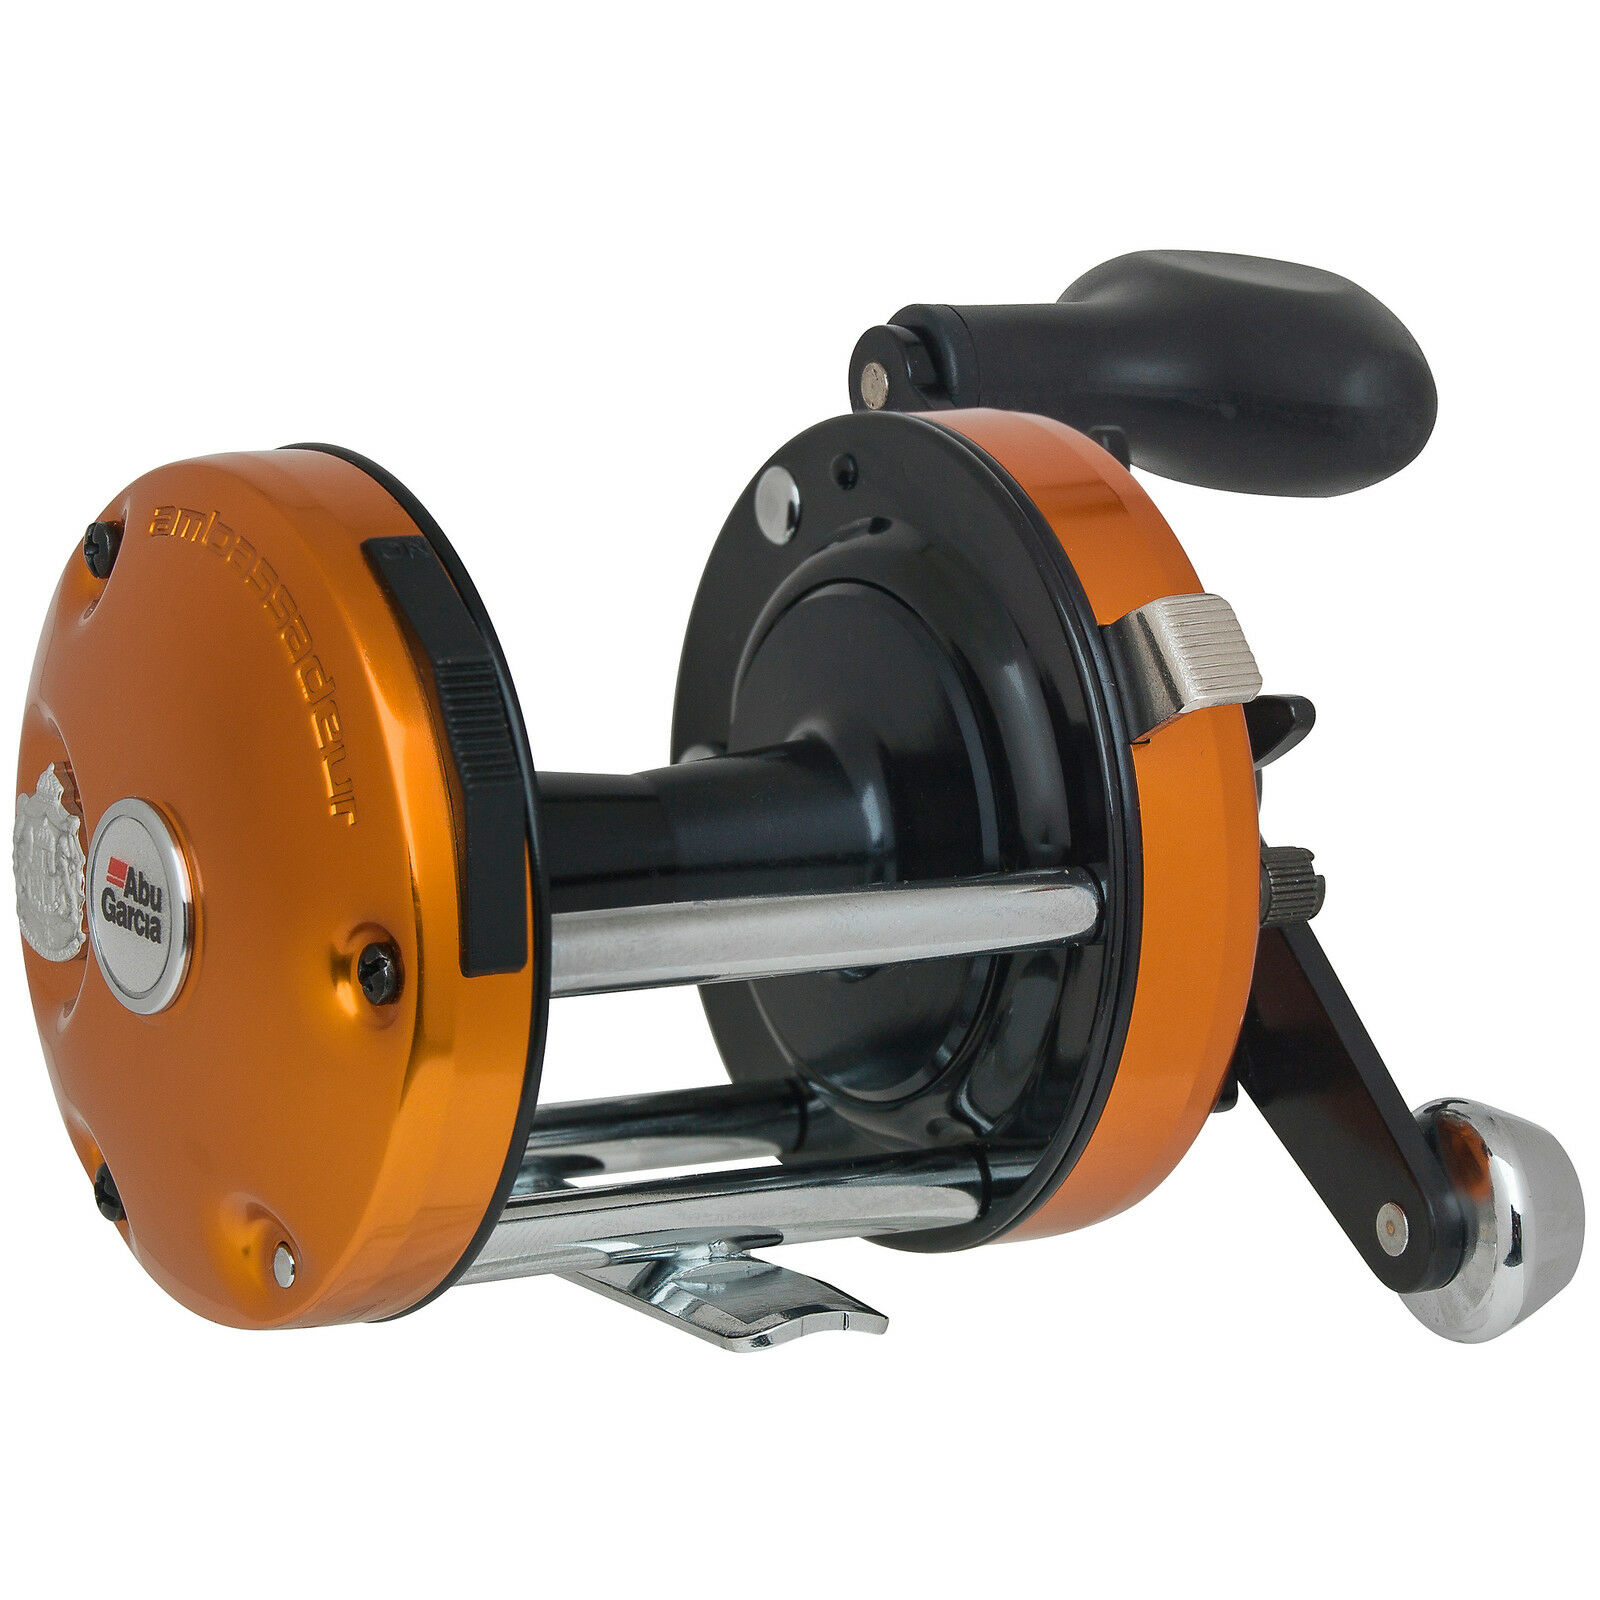 Abu Orange Garcia 6500 CT Power Handle Orange Abu / Sea Fishing Multiplier Reel / 1309544 ddfa96